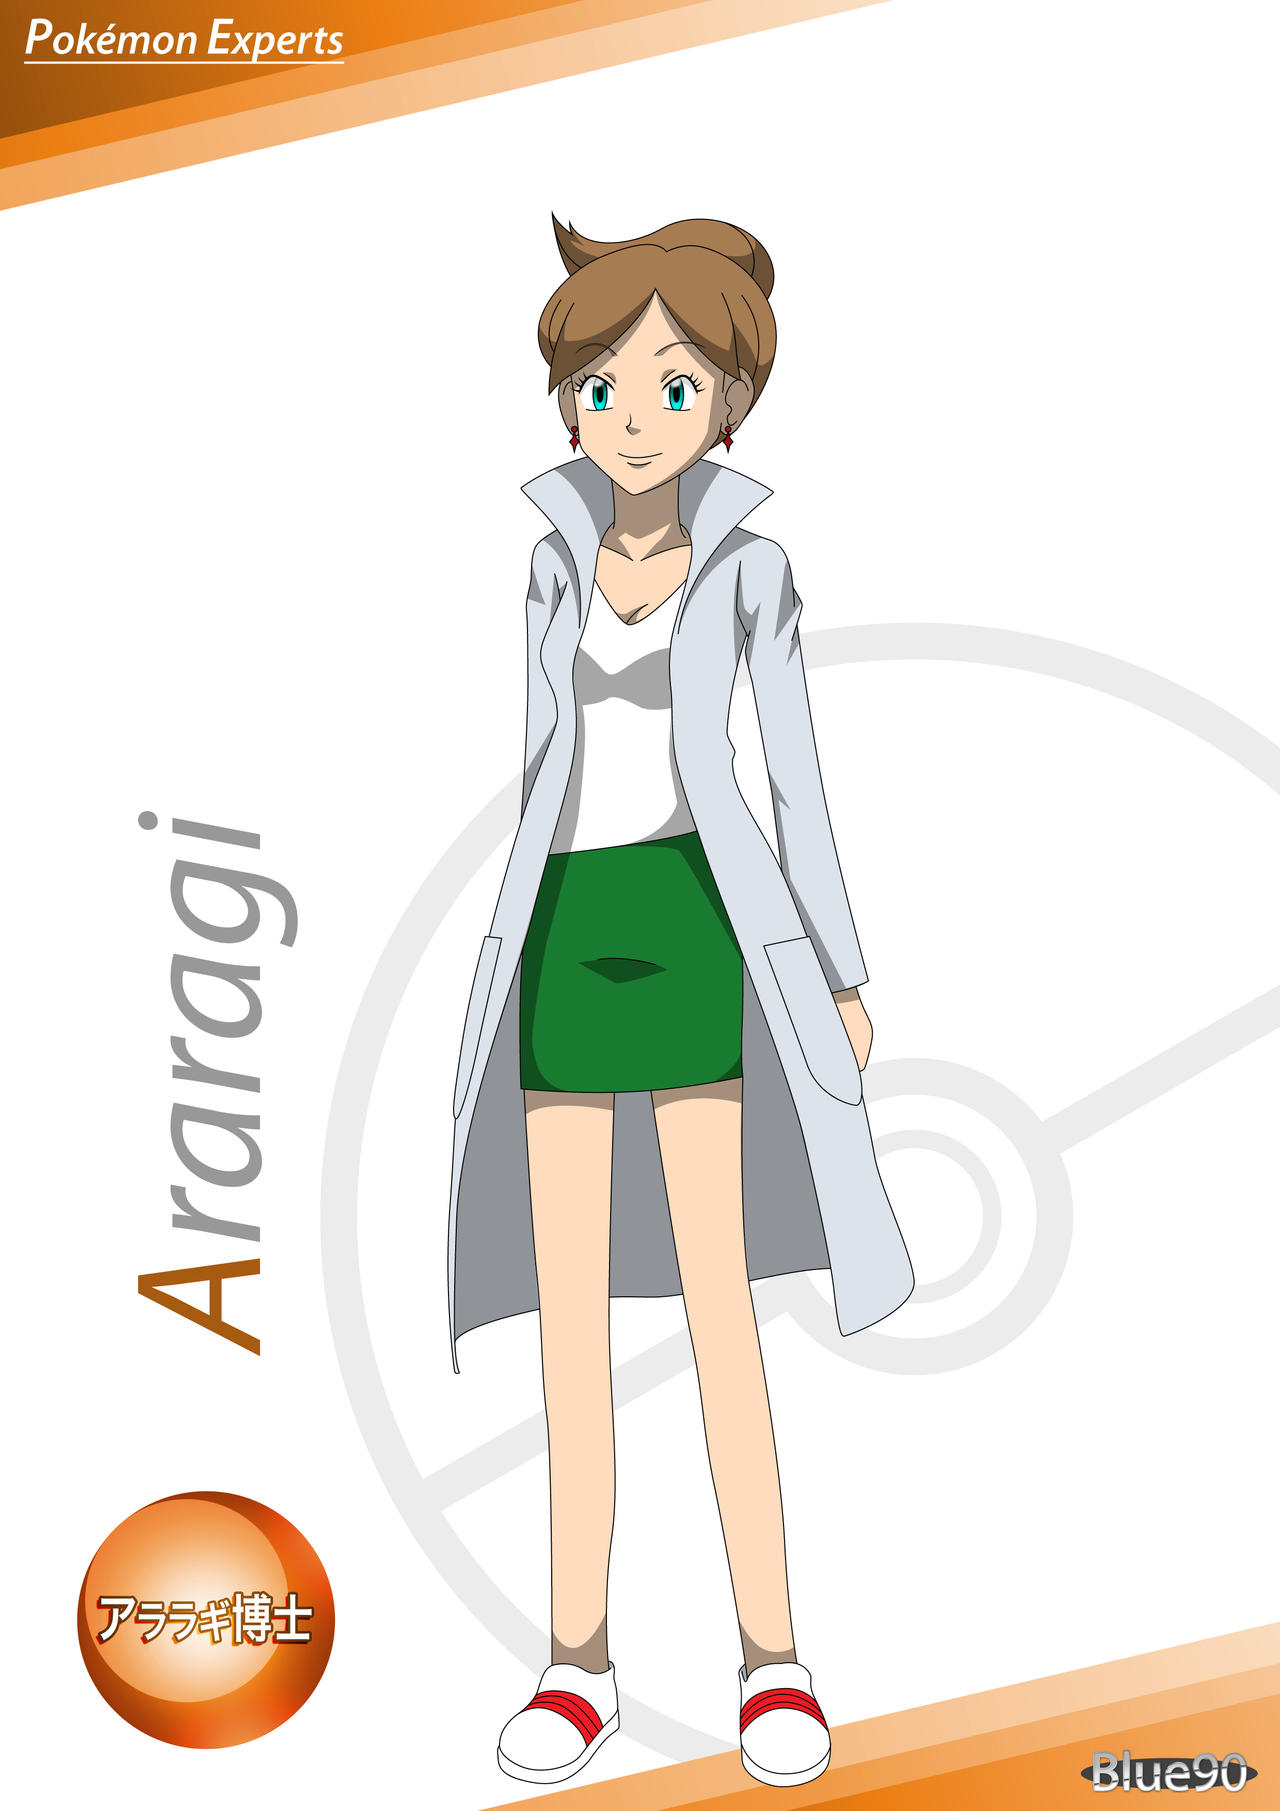 Ash X Professor Juniper Lemon Pkmn V Prof Juniper A Artwork Ver By